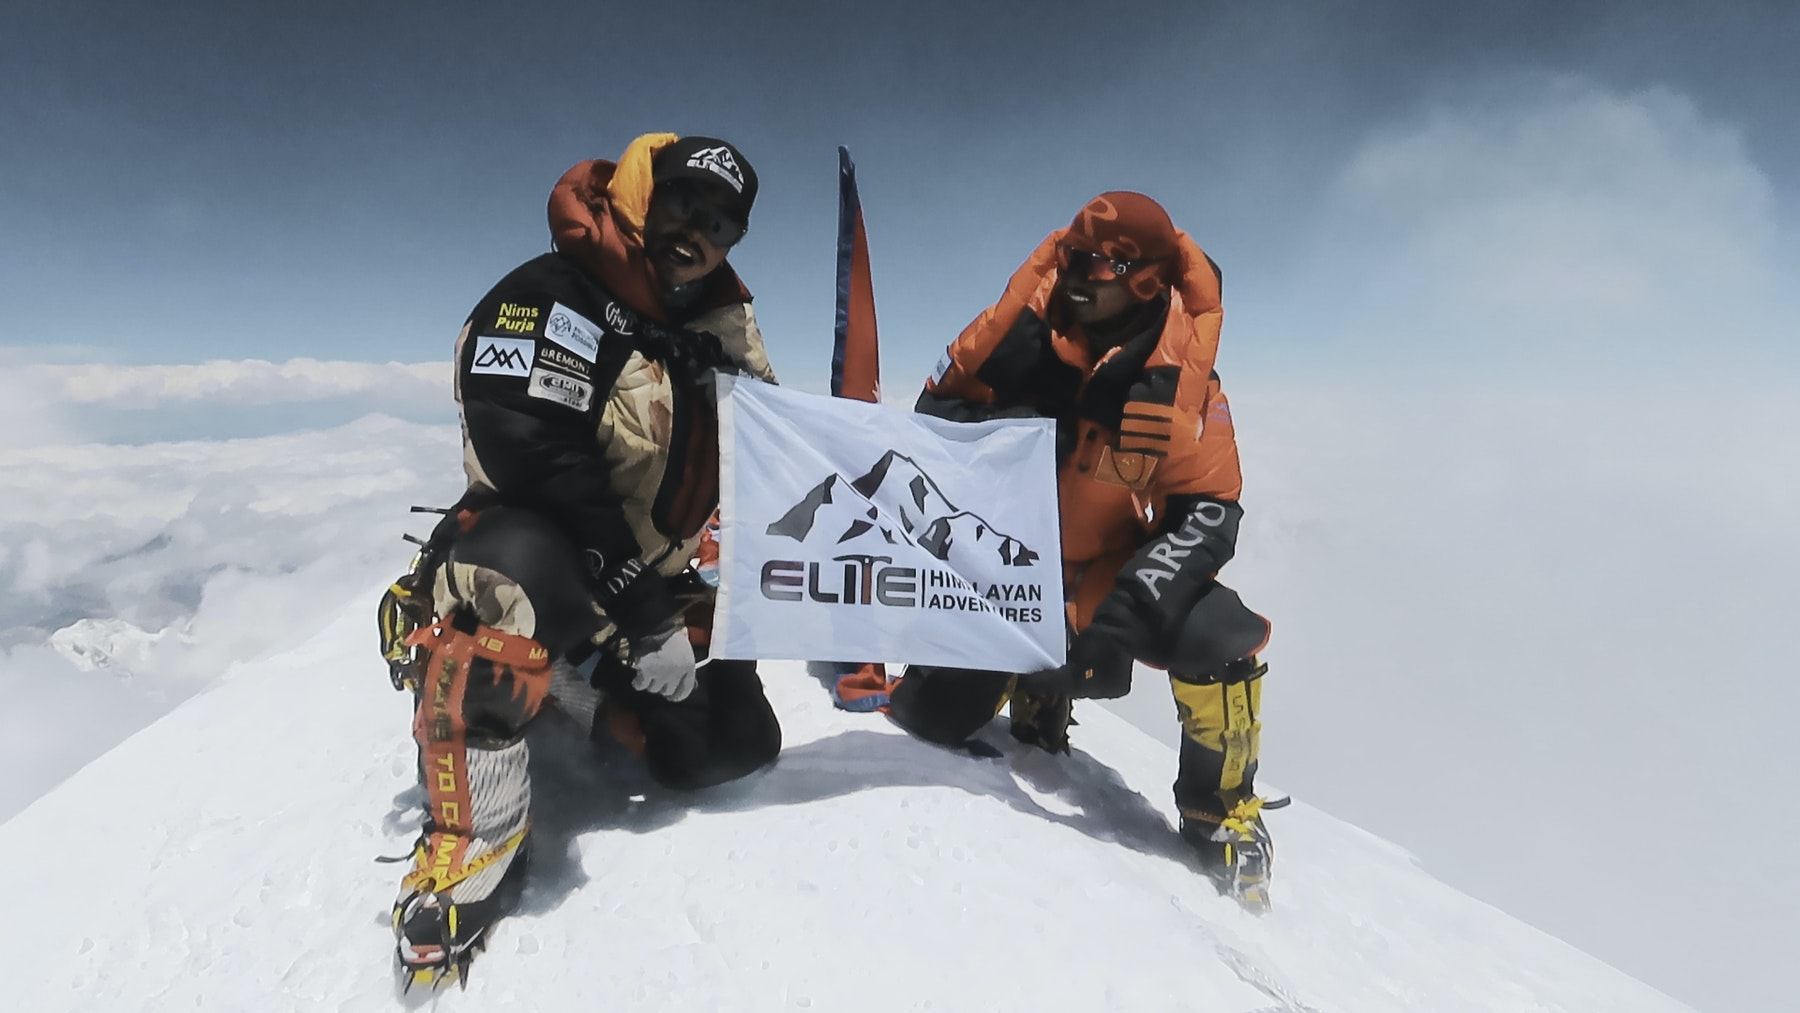 Nims and Mingma David proudly raising elite flag from the summit of Kanchenjunga